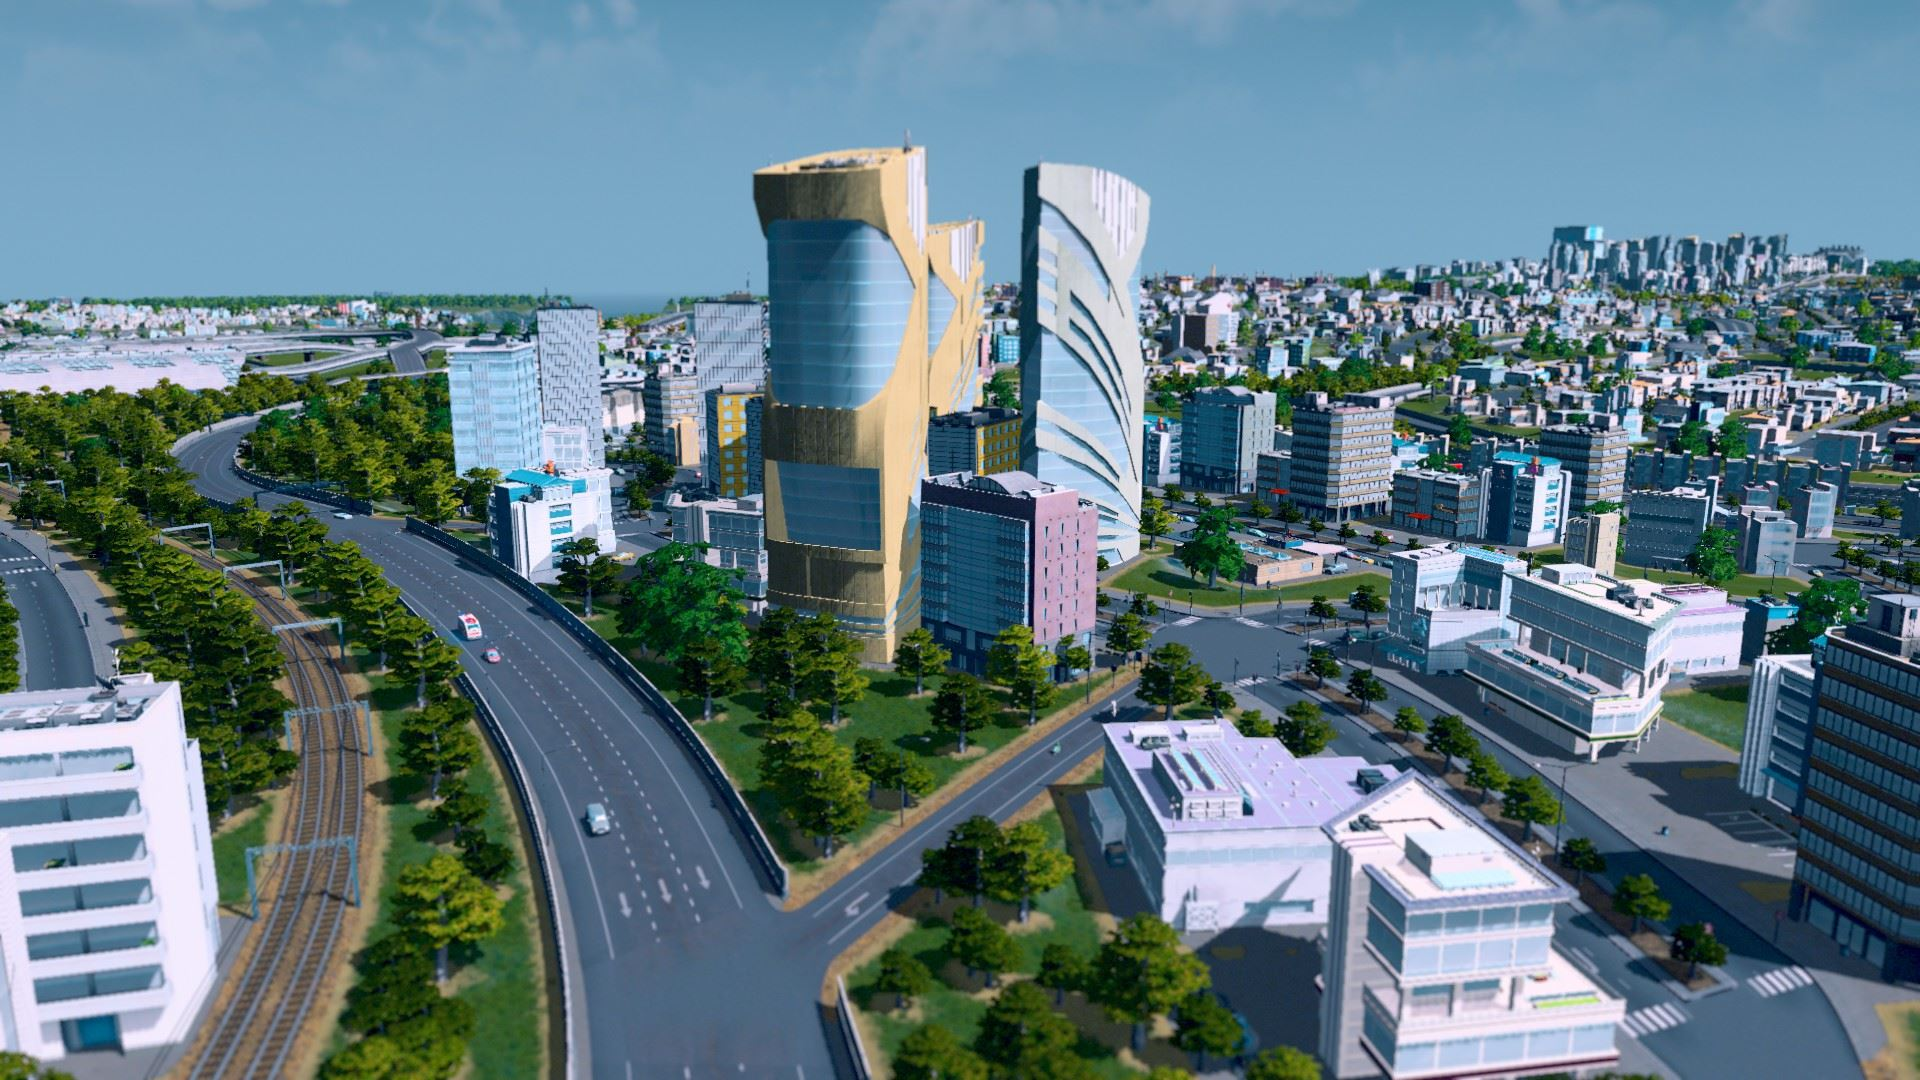 Cities Skylines: All Expansions at a Glance